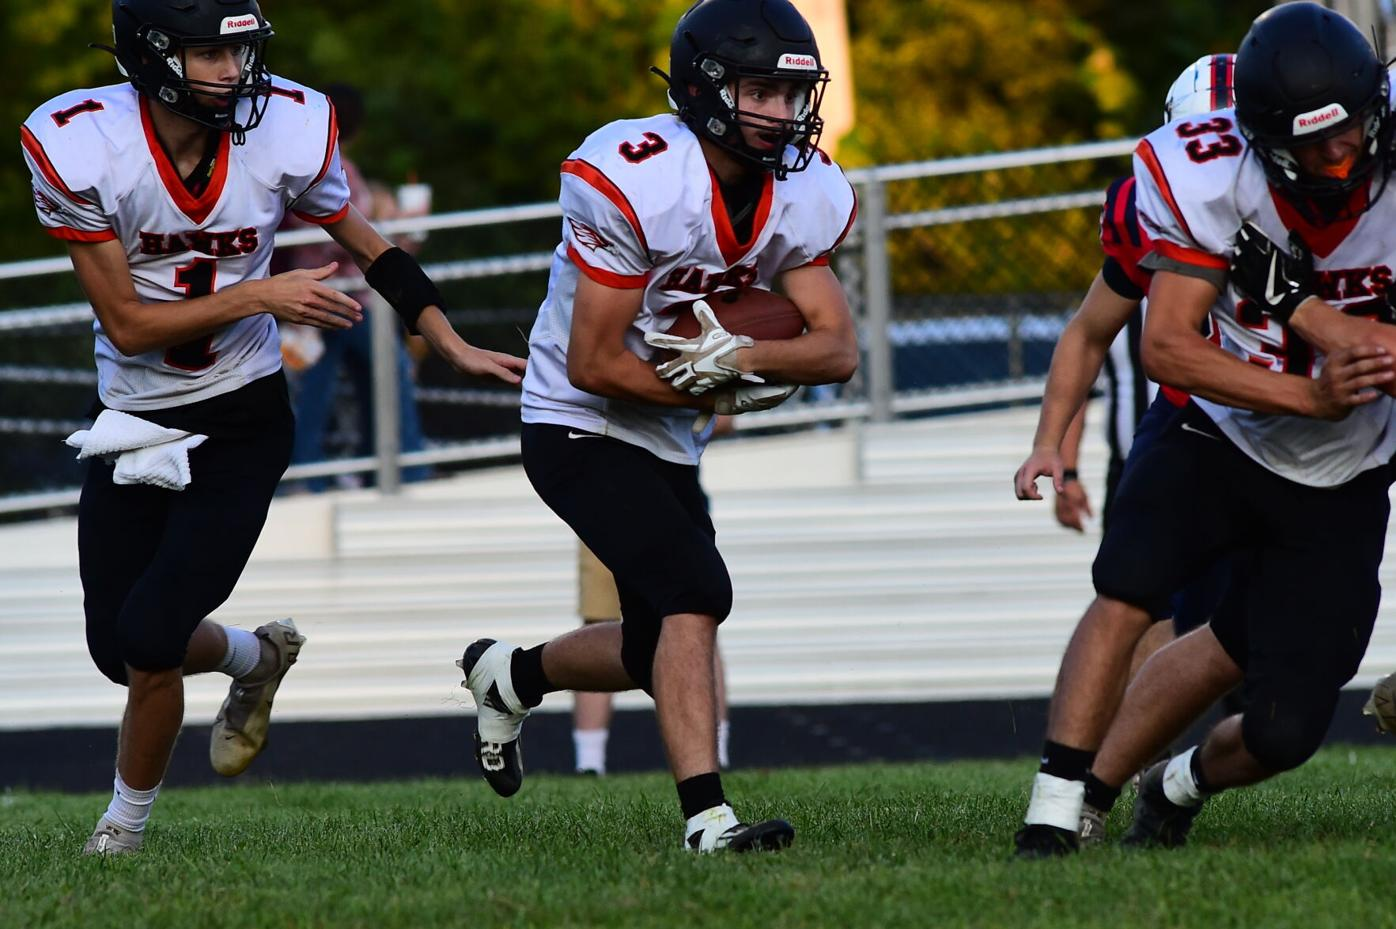 Jacob Haddix takes the hand off from Caden Davis with Parker Bunch lead blocking.JPG